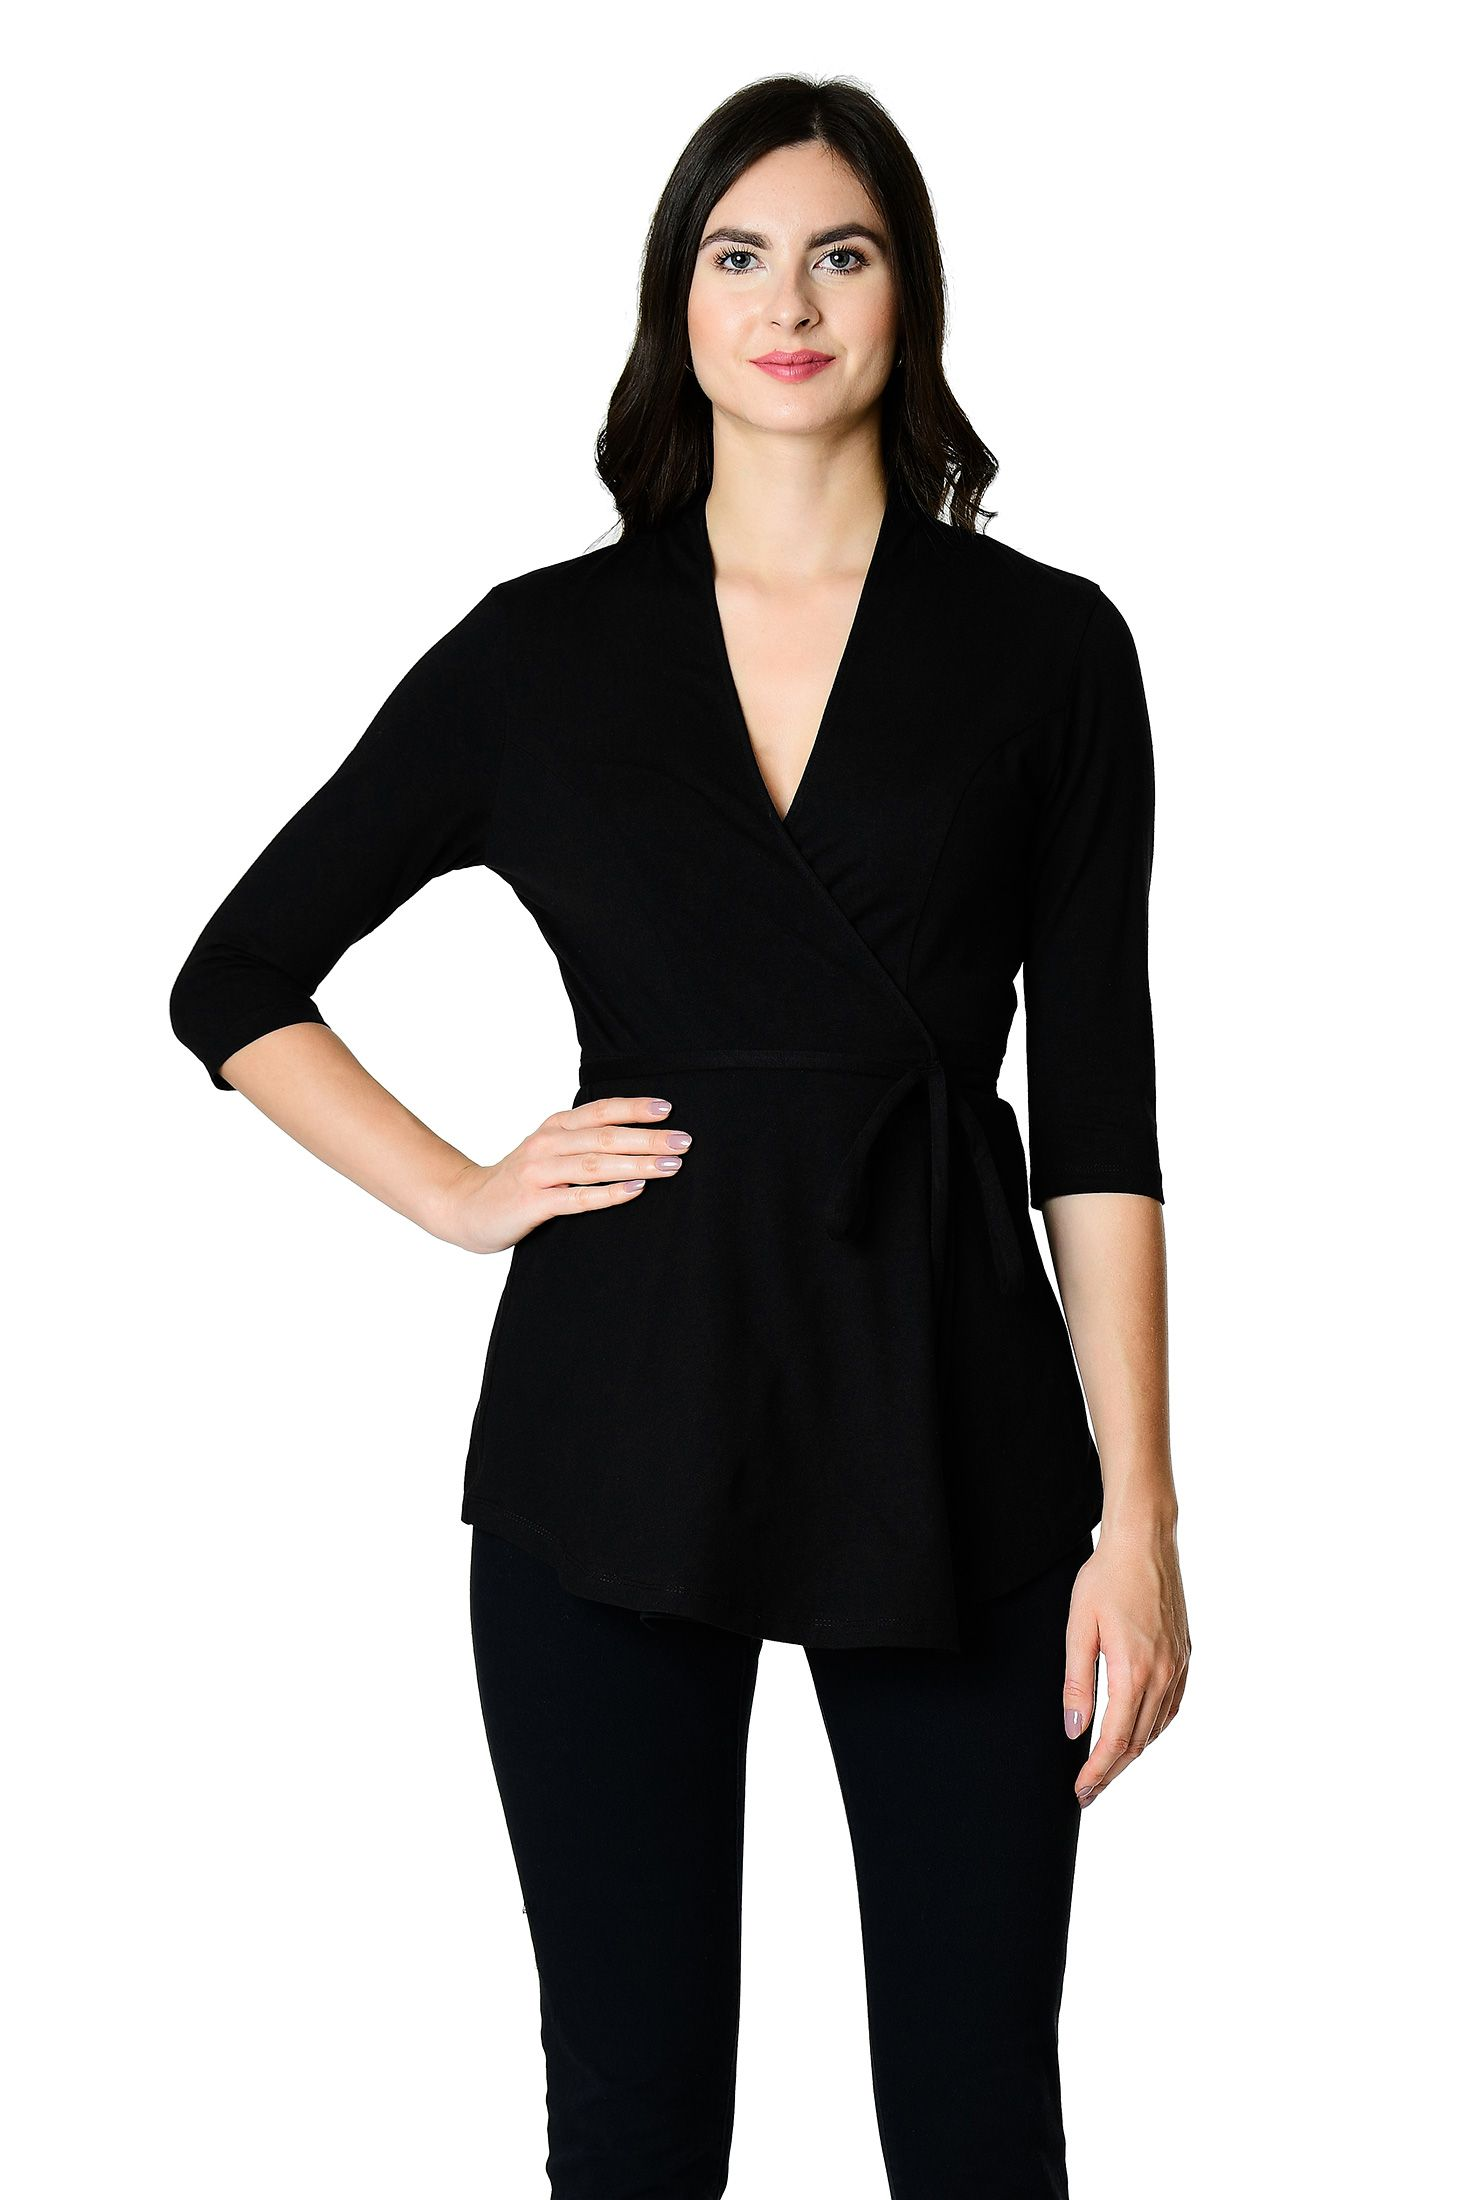 popular stores various styles arrives below the elbow length sleeve tops, black tops, cotton/spandex ...